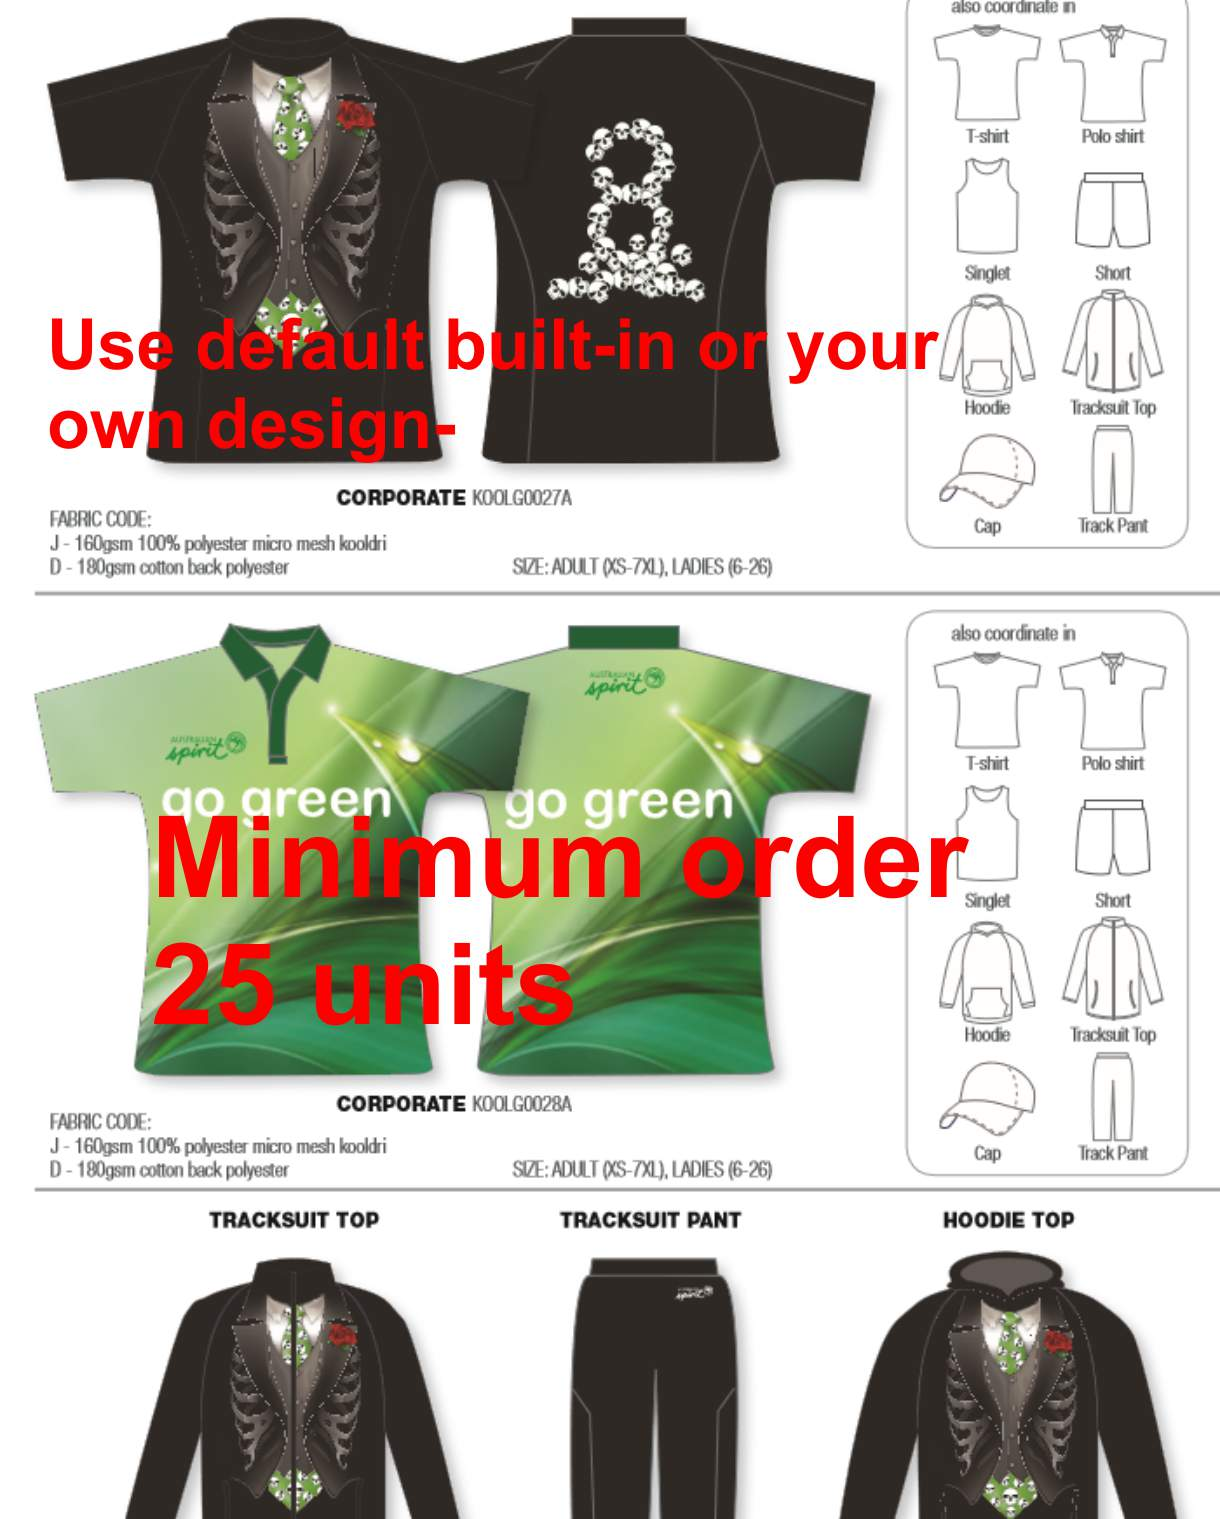 Design your own t-shirt and save it - Events Style 1 Design Your Own Color Minimum 25 Units